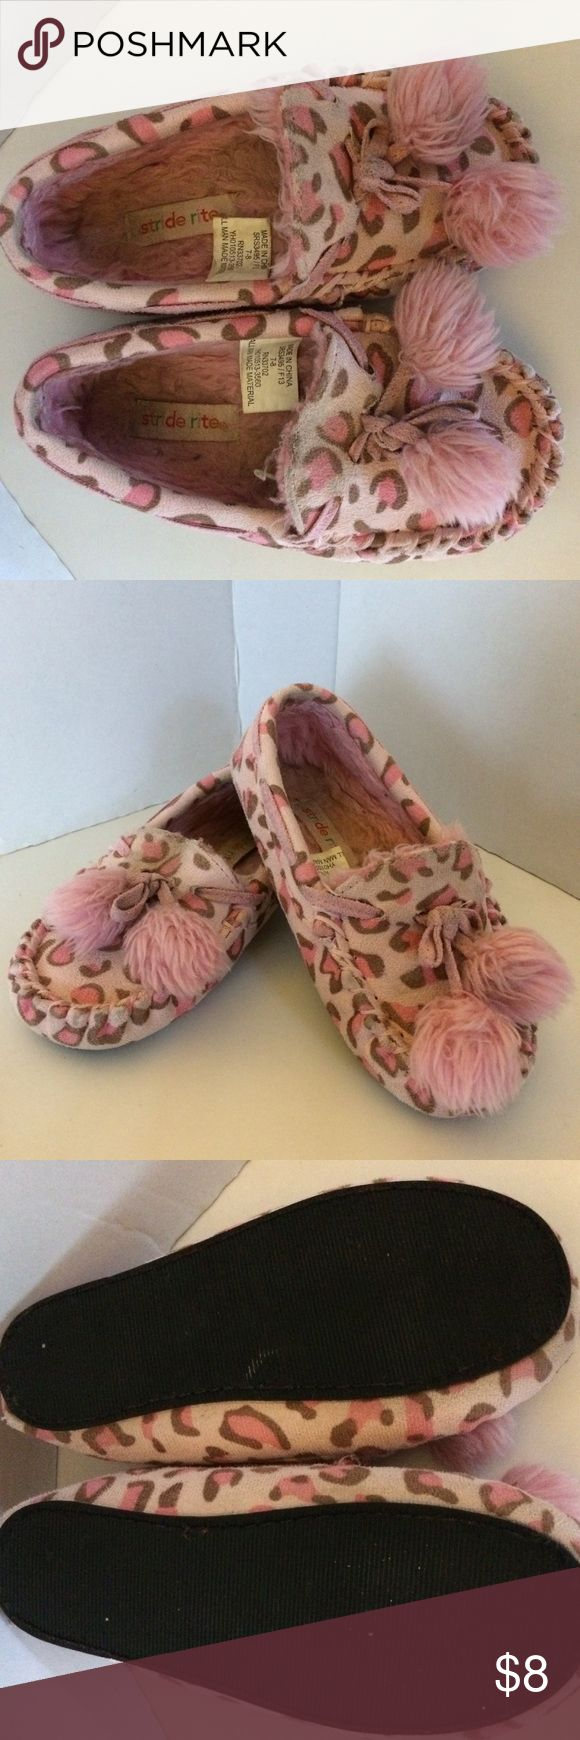 Toddler size 7 StrideRite pink slippers! Toddler size 7/8 StrideRite sturdy pink animal print slippers with Pom Poms and real non skid soles. Could even be worn as shoes! Machine wash. Loved so a little fading / discoloring. Stride Rite Shoes Slippers